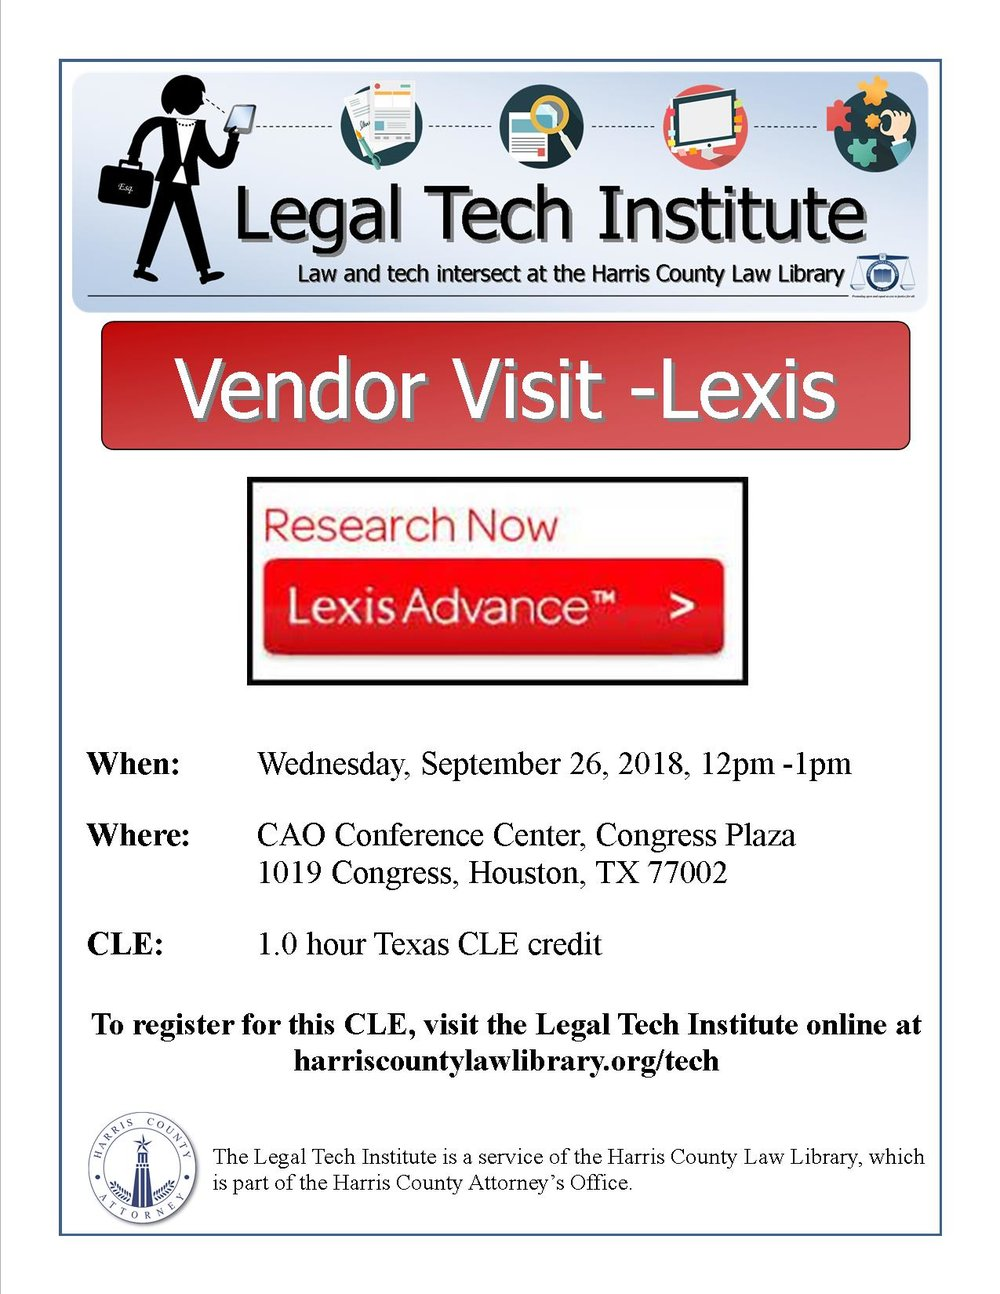 LTI Vendor Visit Lexis September 26, 2018 Reference Desk Sign.jpg